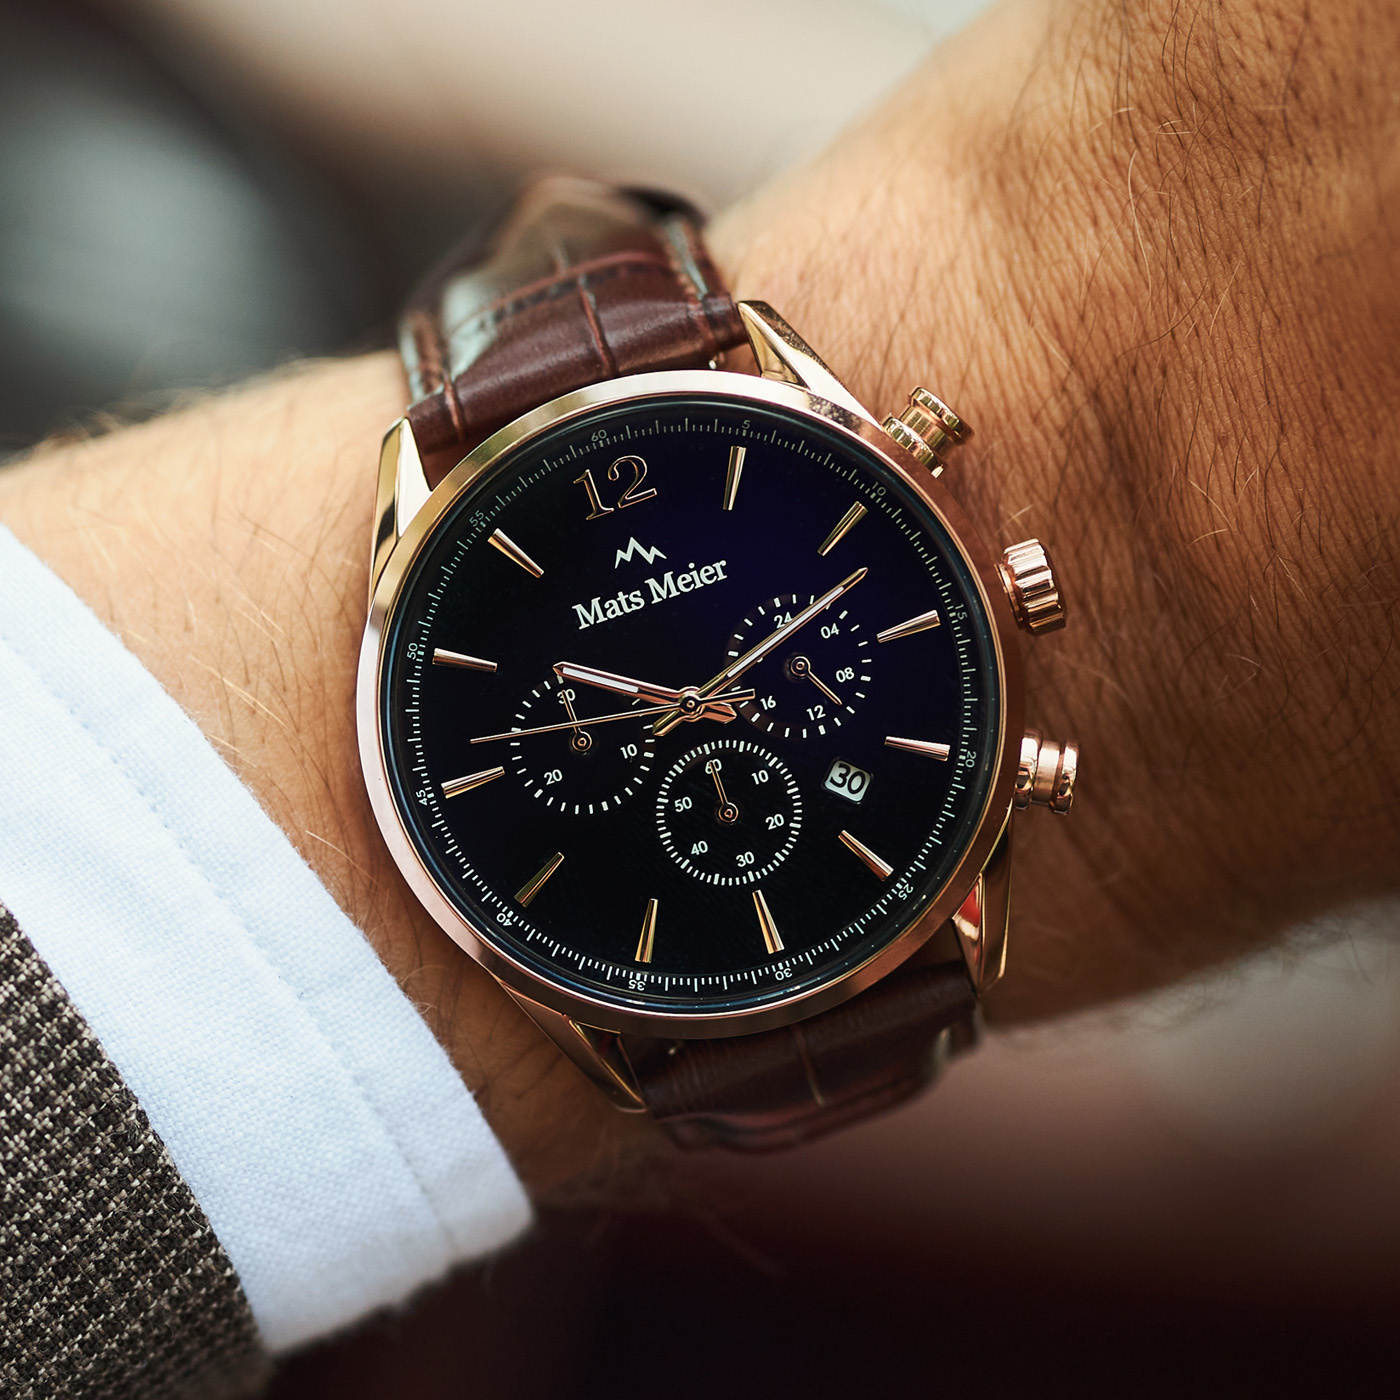 Mats Meier Grand Cornier montre chronographe noir / marron